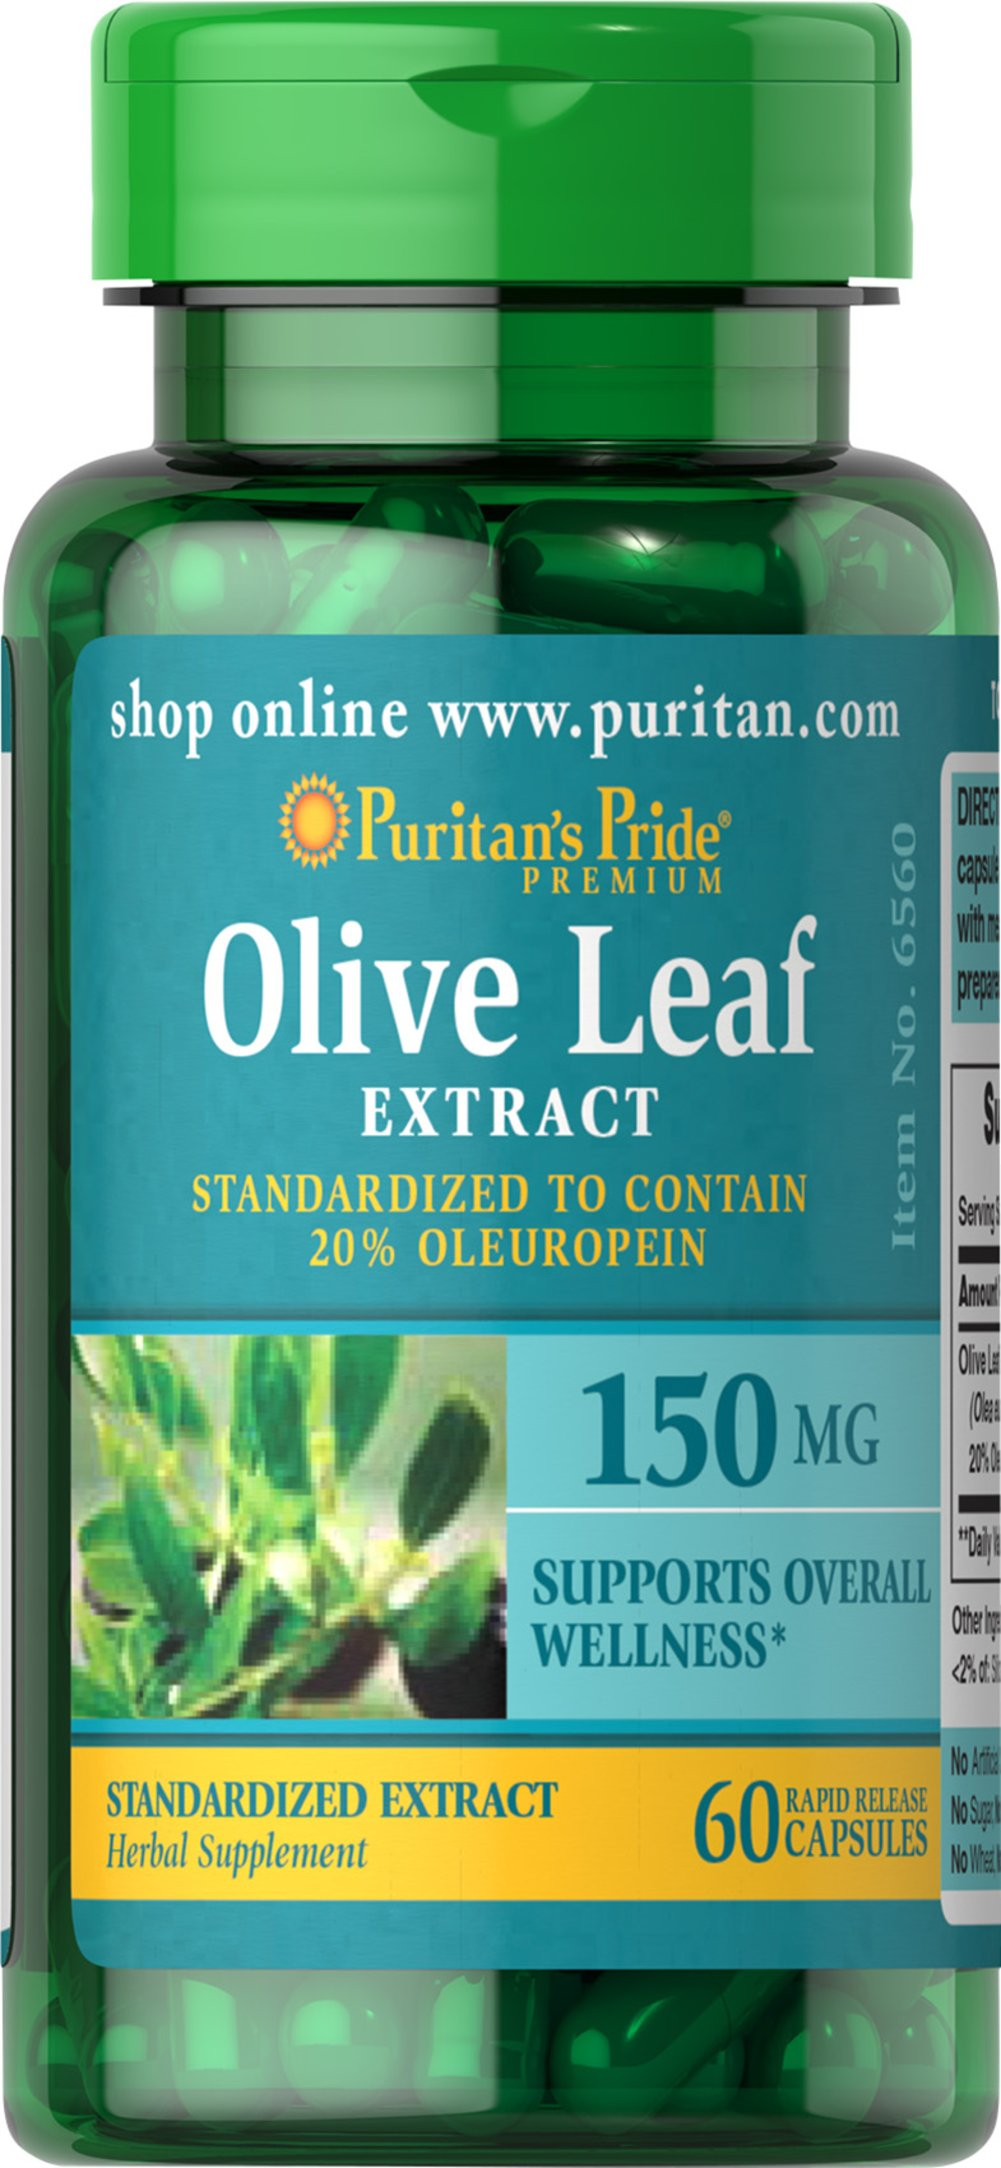 Olive Leaf Standardized Extract 150 mg <p>Our Olive Leaf Extract is derived from the leaves of the Mediterranean olive tree. This extract is standardized for 20% Oleuropein, a powerful phytonutrient. Olive leaves have been used for overall well-being for thousands of years by people in countries bordering the Mediterranean.</p> 60 Capsules 150 mg $2.78